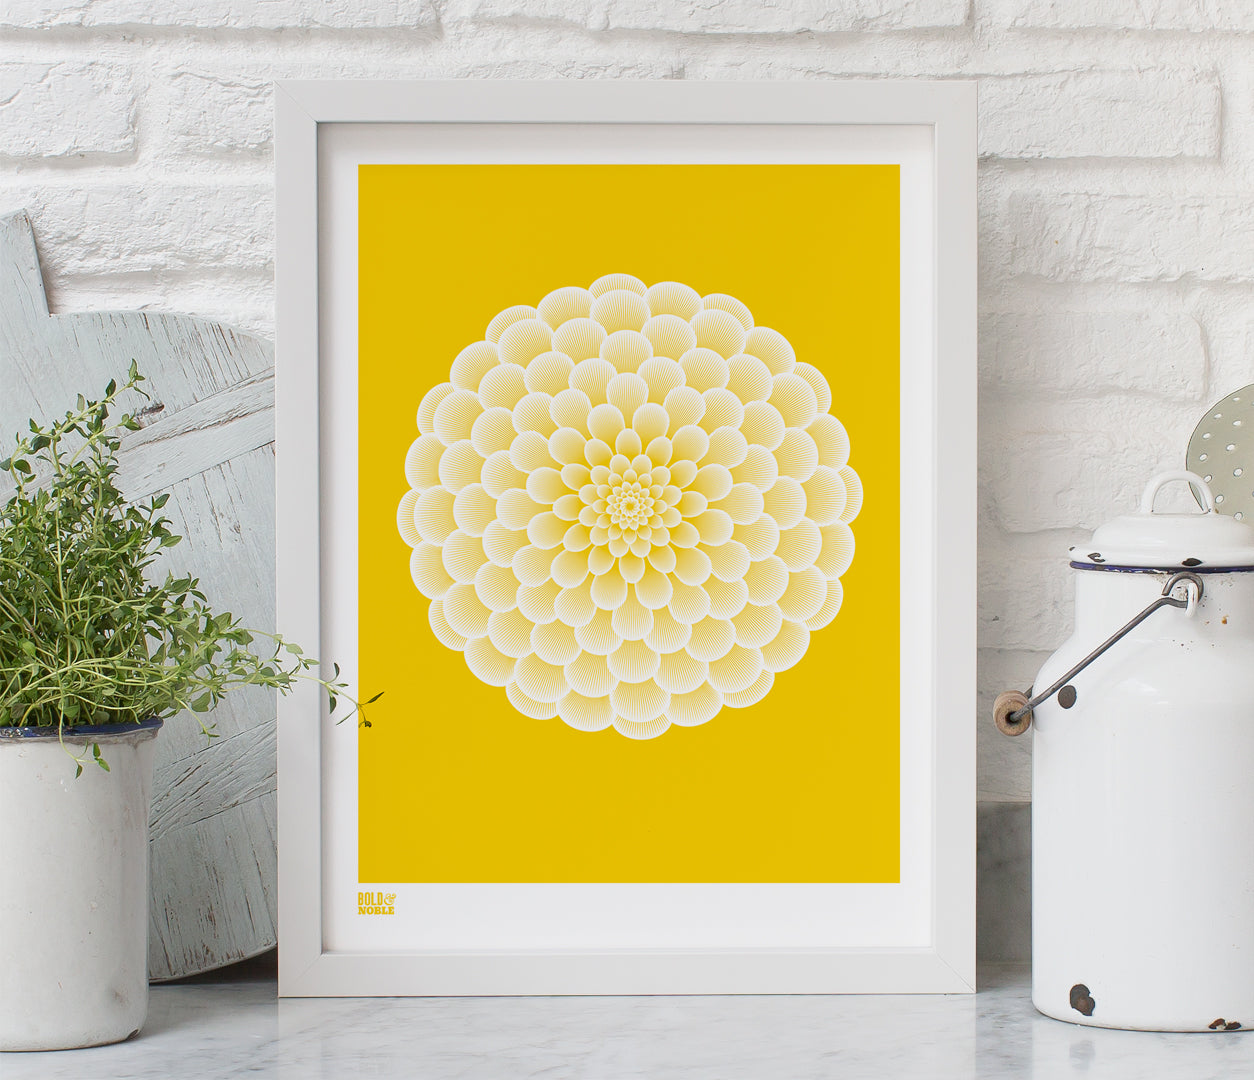 Pictures and Wall Art, Screen Printed Dahlia Pompon in Bright Yellow